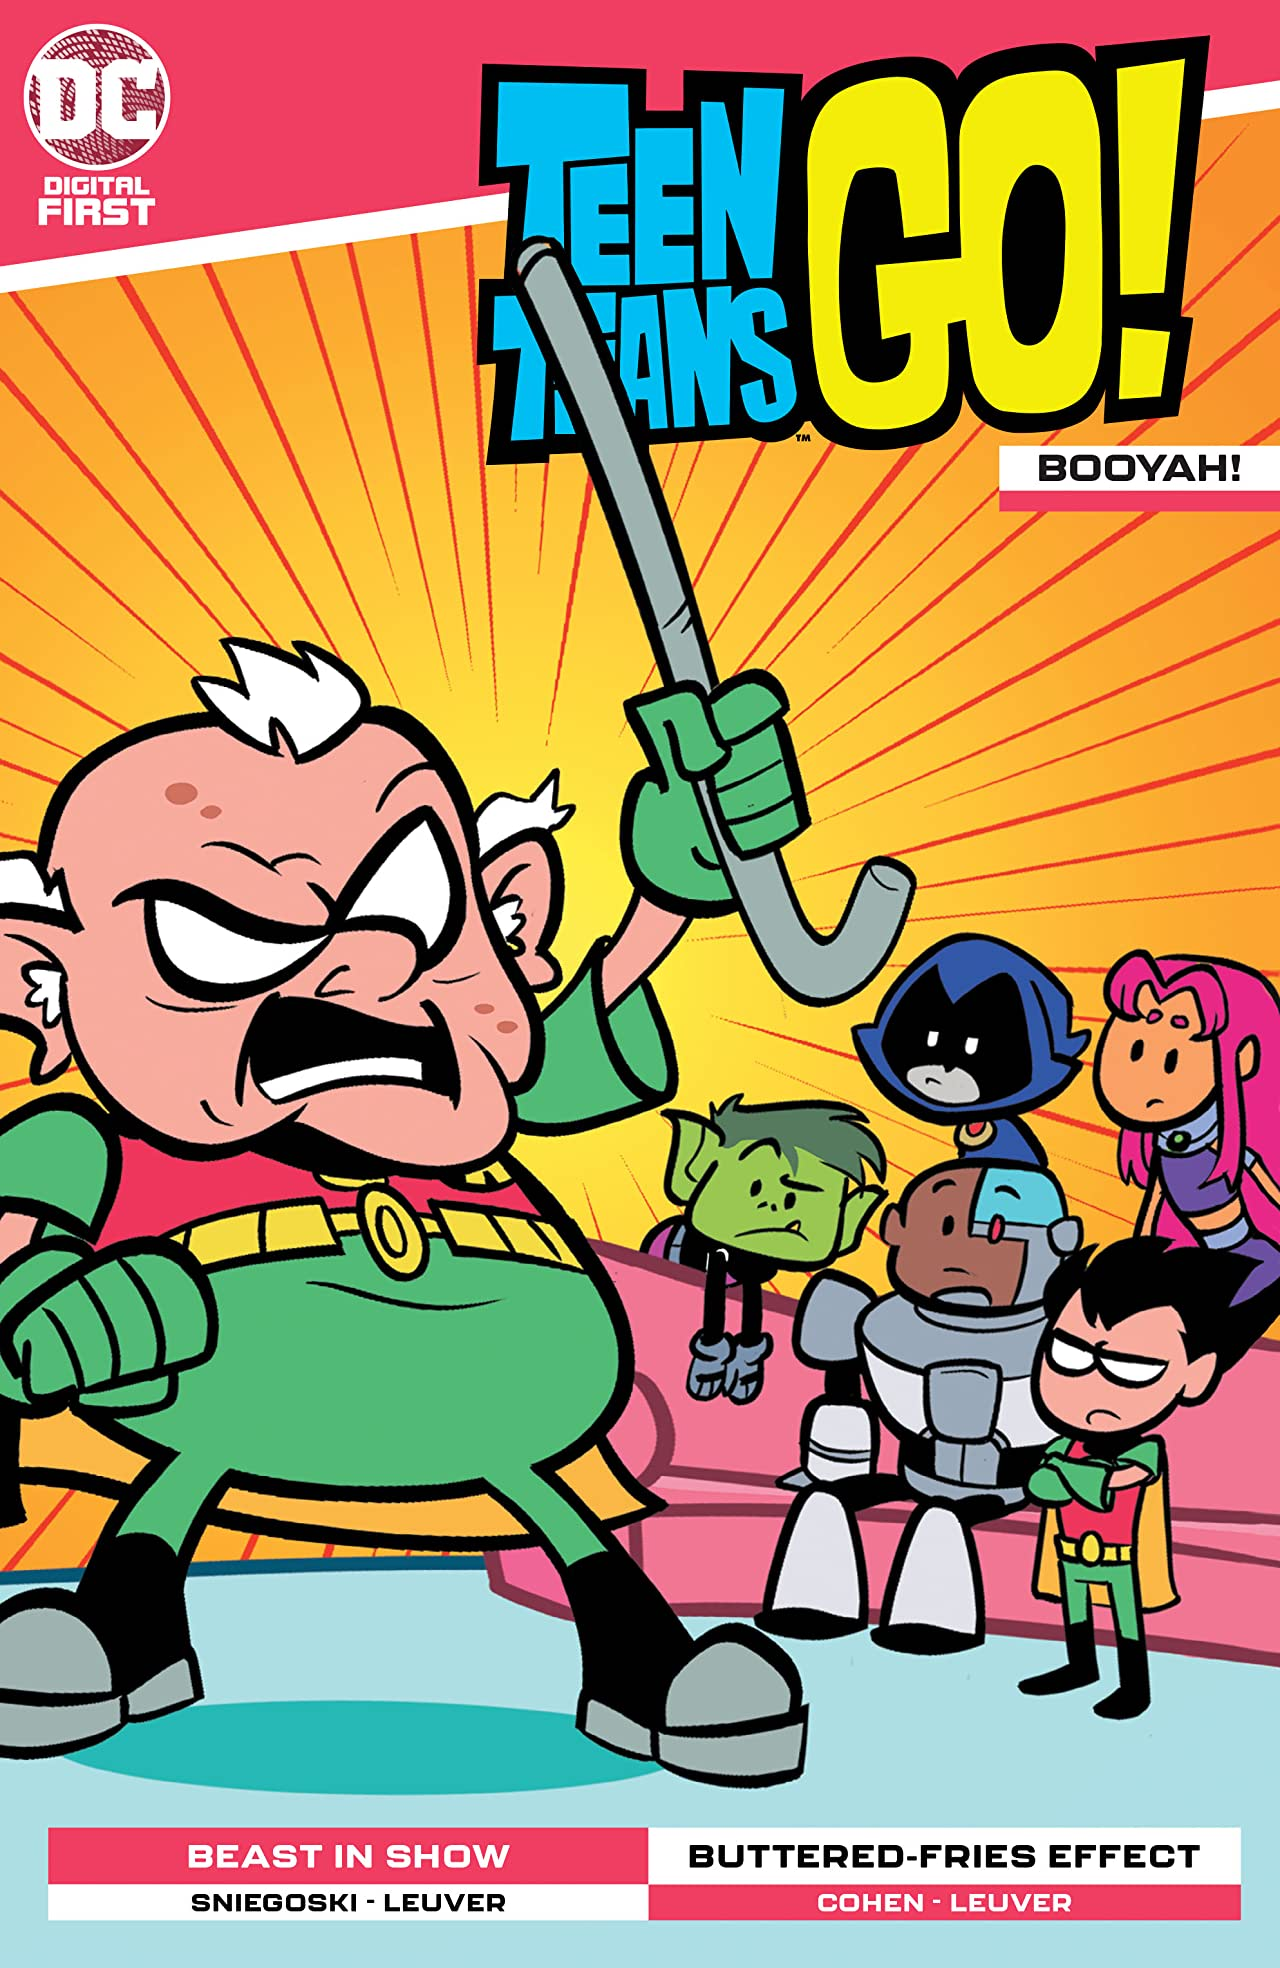 Teen Titans Go!: Booyah! Vol 1 3 (Digital)